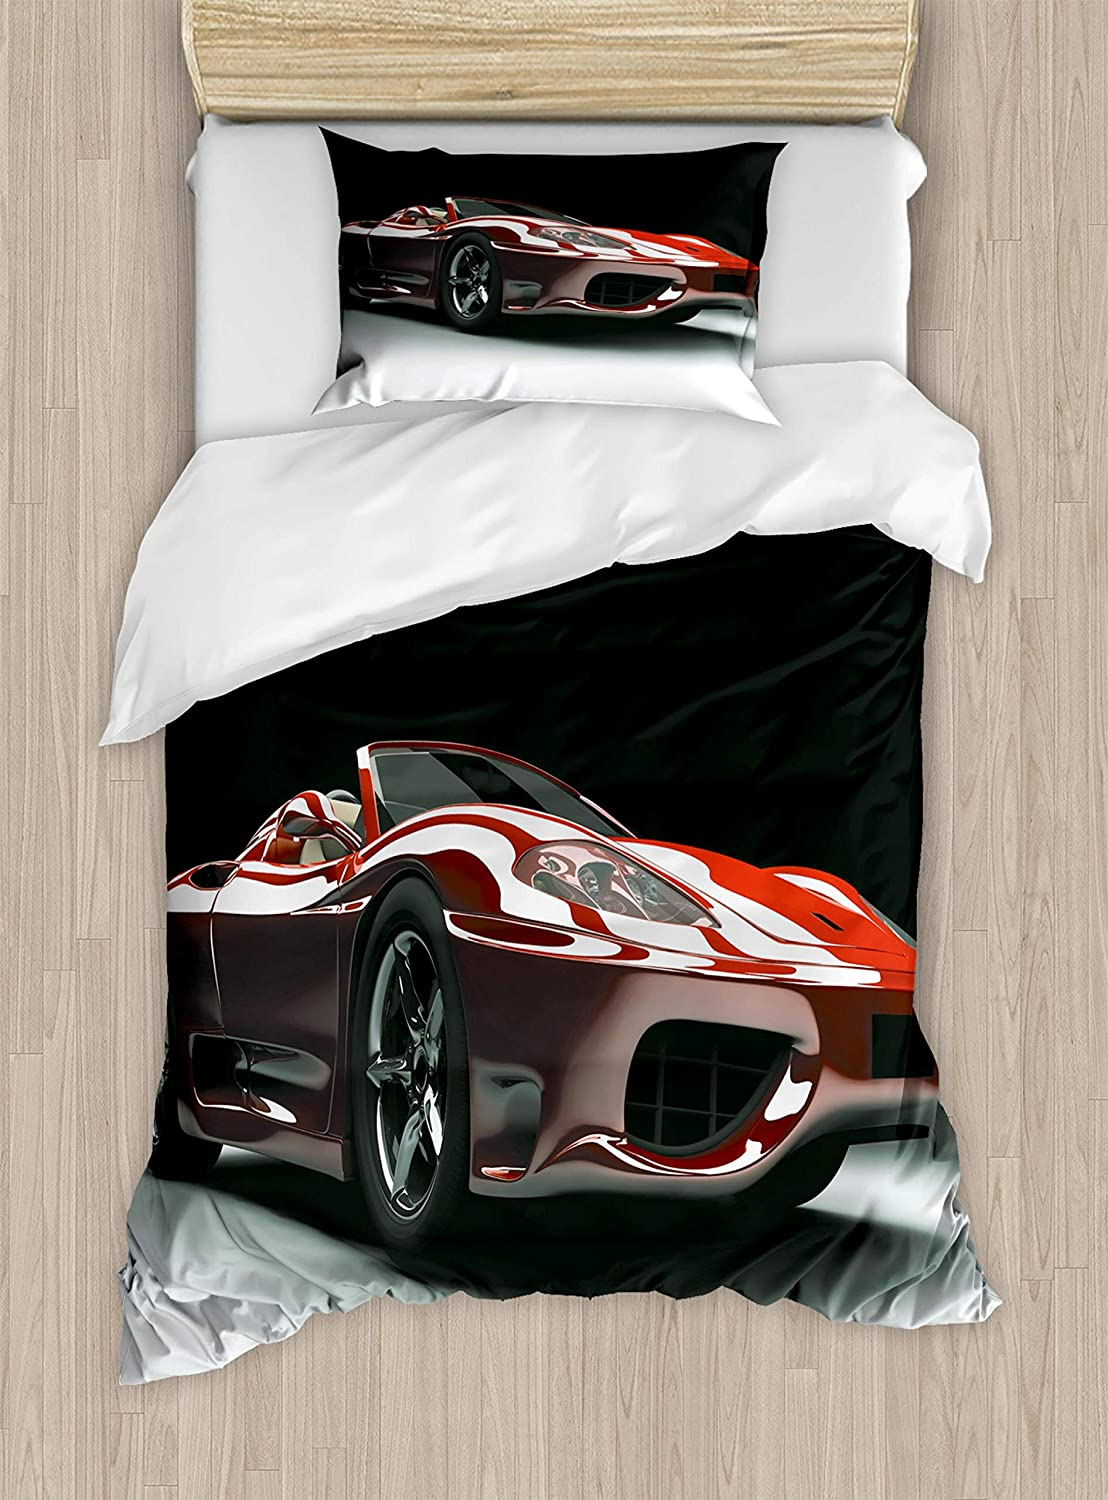 Cars Twin Size Duvet Cover Set by Ambesonne, Automotive Industry Theme Powerful Engine Fast Technology Prestige Performance, Decorative 2 Piece Bedding Set with 1 Pillow Sham, Red Black White